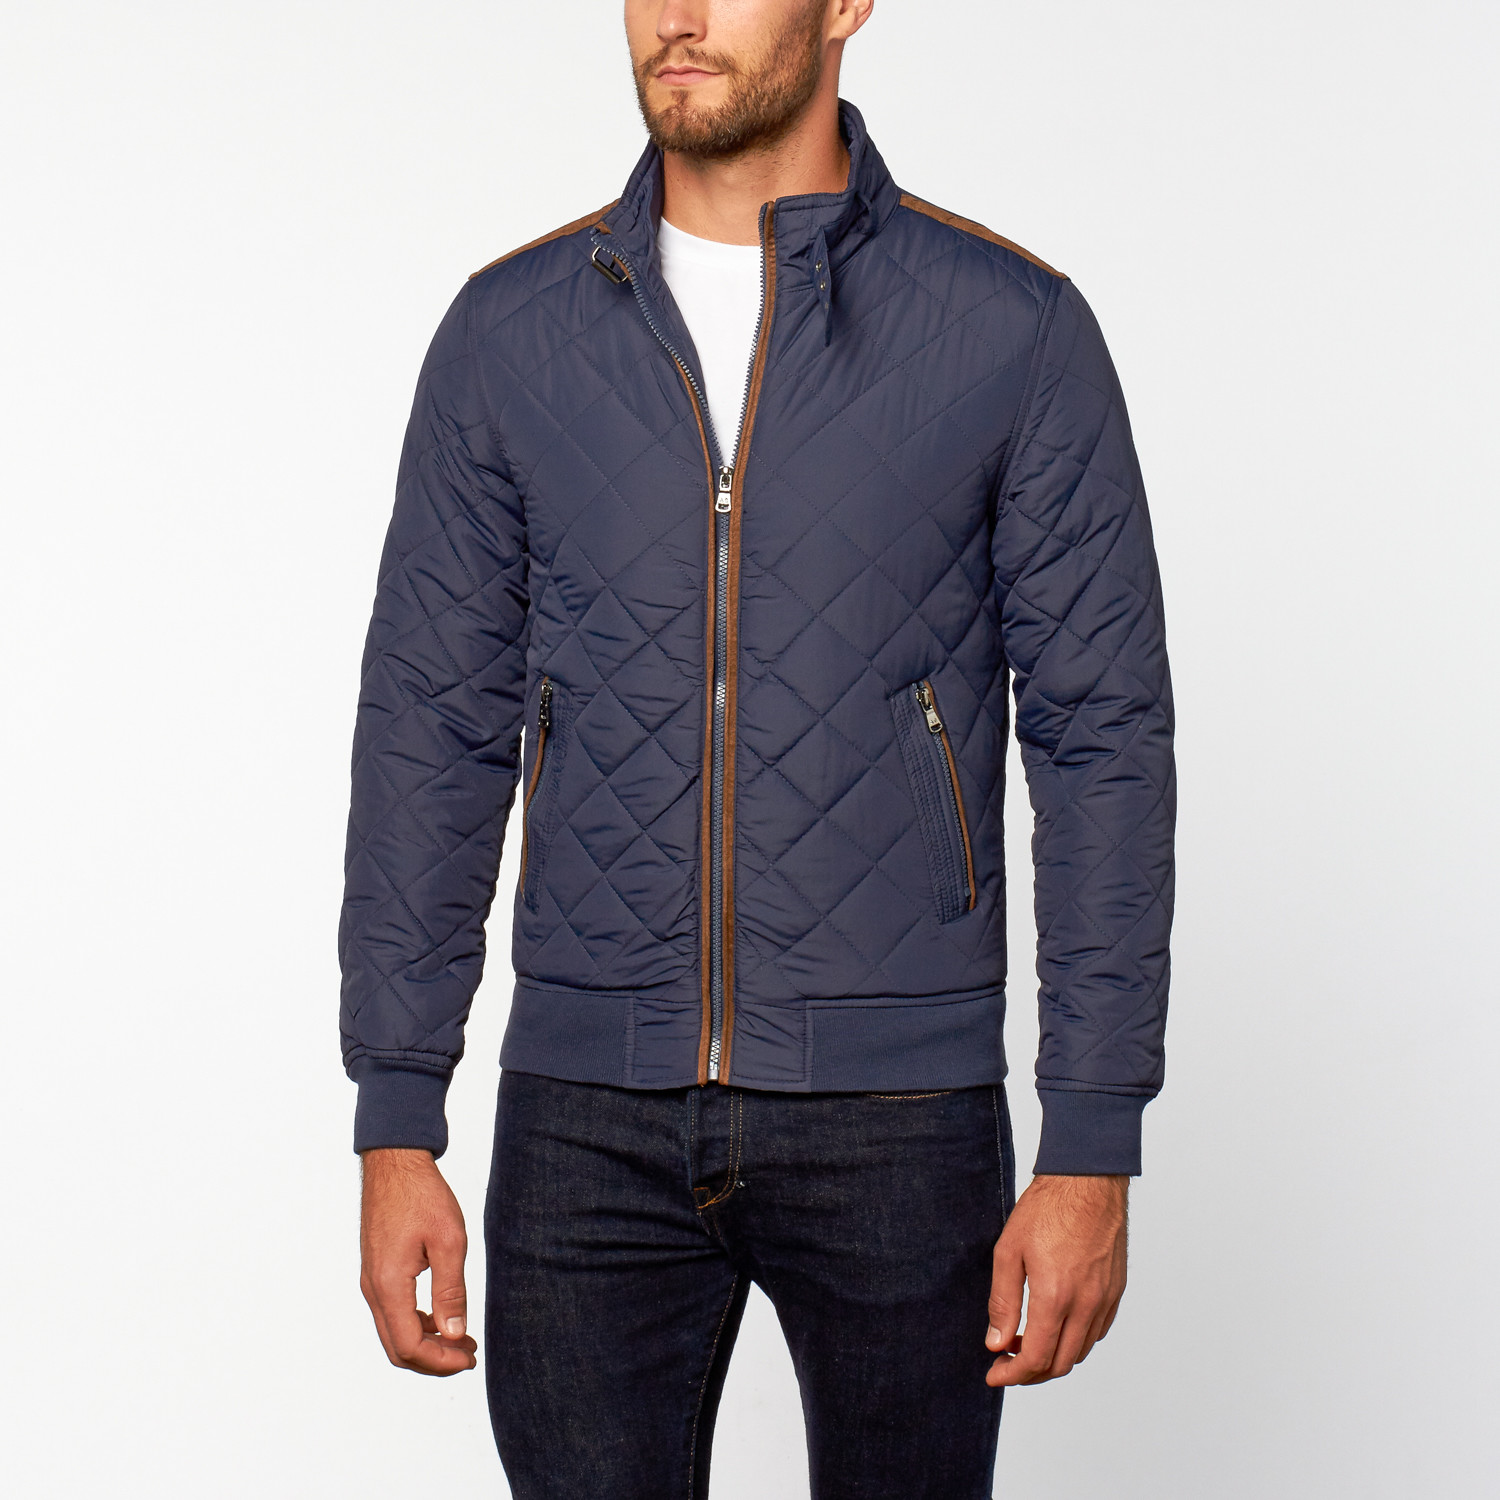 Diamond Quilted Varsity Jacket Navy M American Stitch Touch